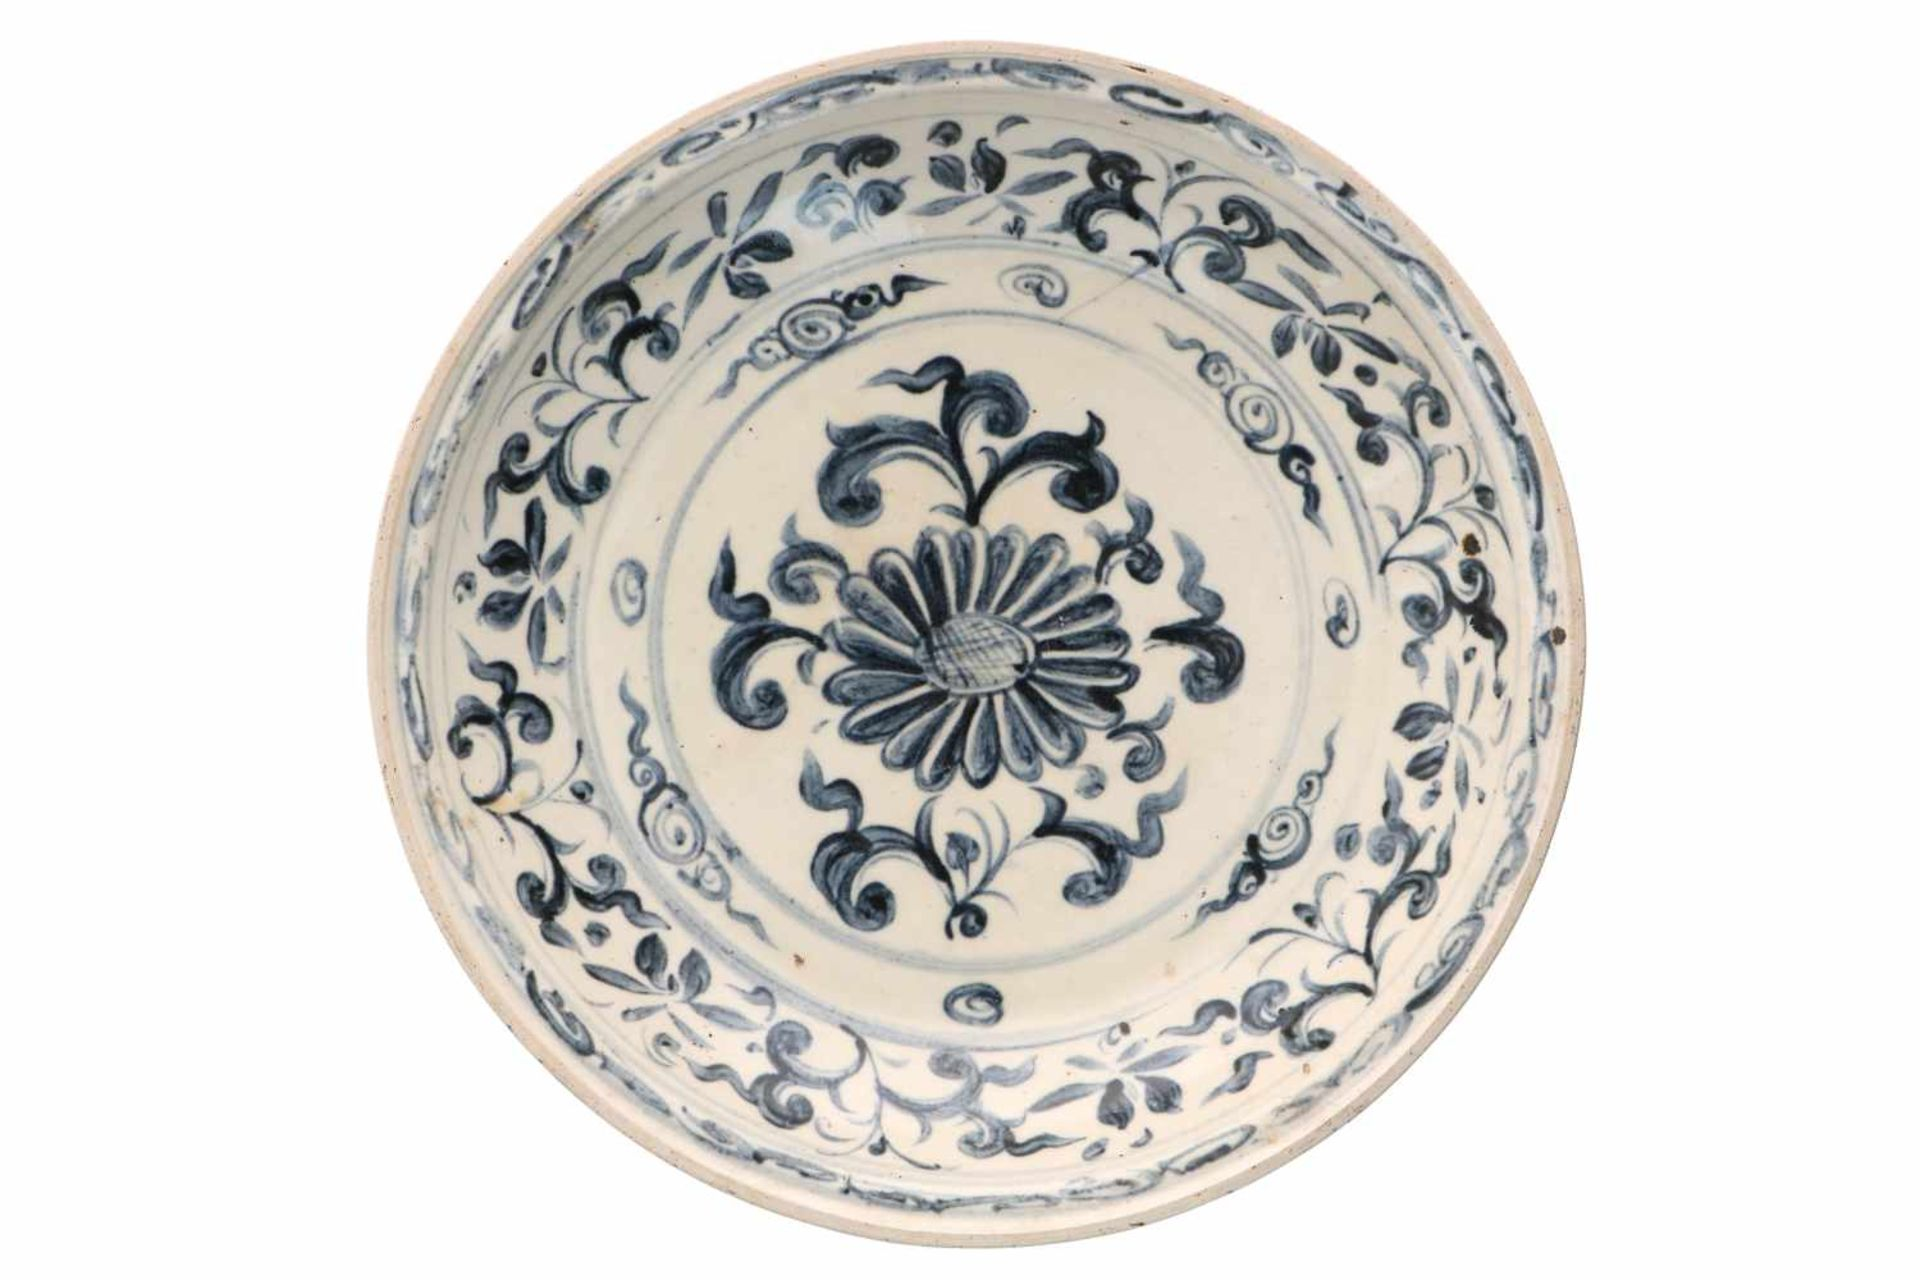 A blue and white porcelain deep charger, decorated with flowers. Unmarked. Vietnam (Annam), 15th/